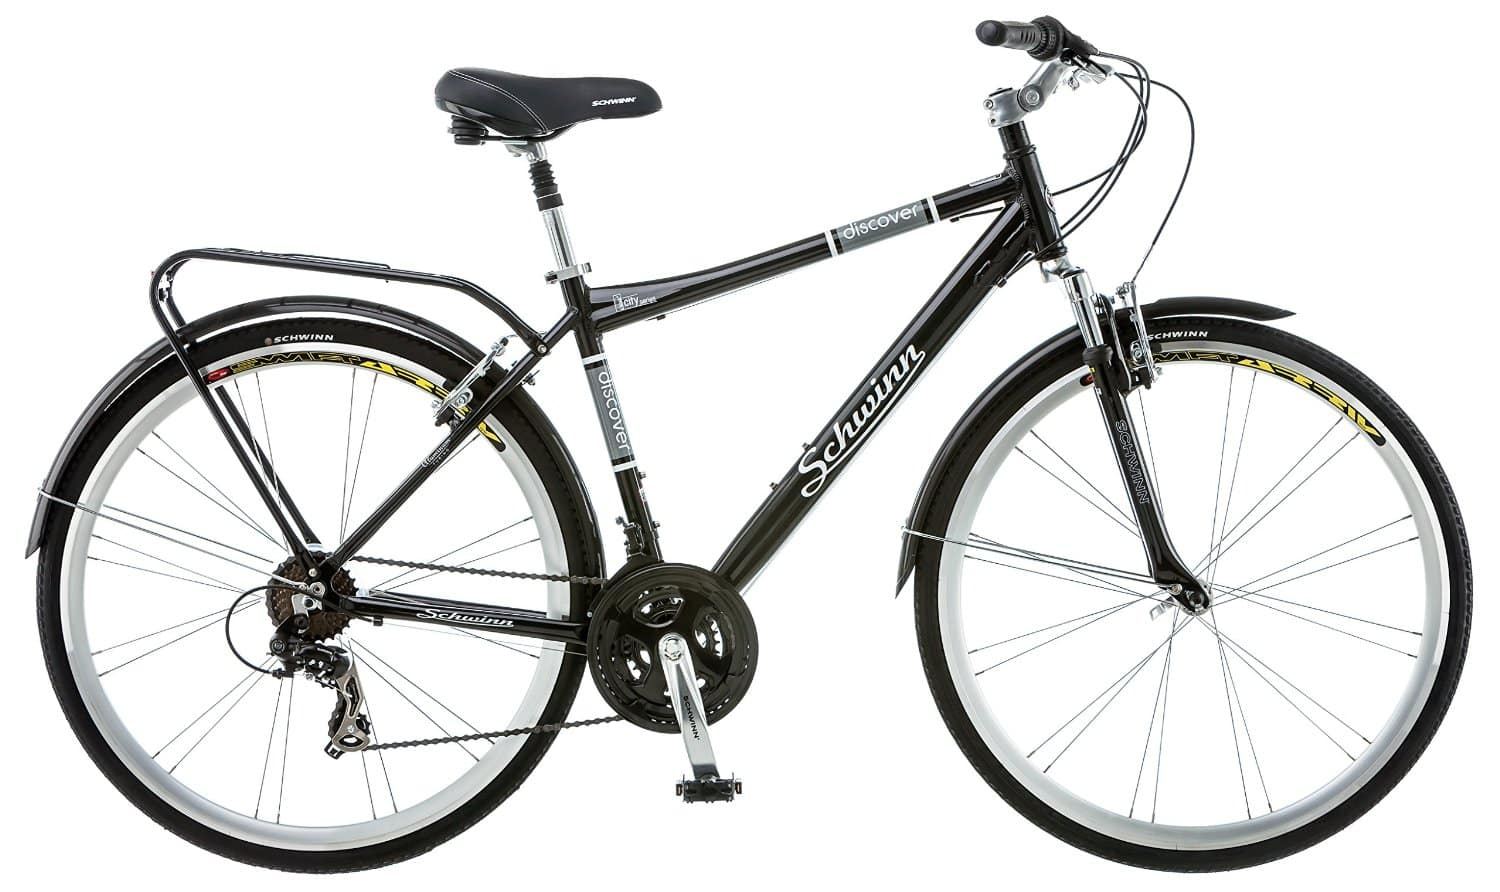 Schwinn Discover Men's Hybrid Bike (700C Wheels) $179.99 @ AMAZON